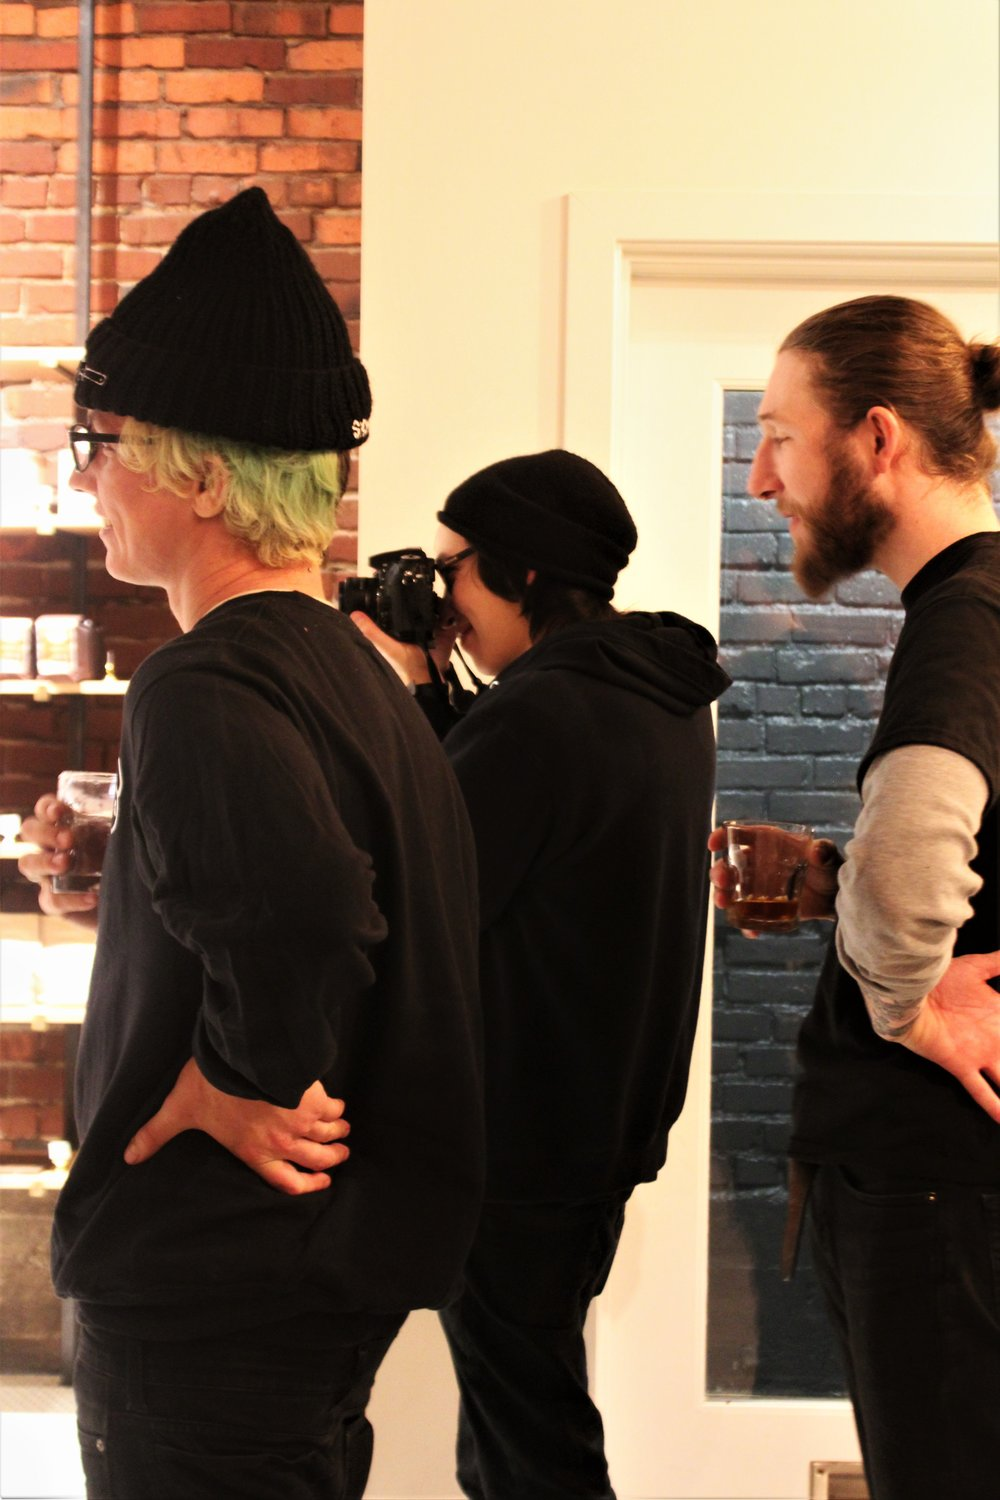 From left to right: Alex, Marcus, and Taylor Best, discussing photos during our shoot